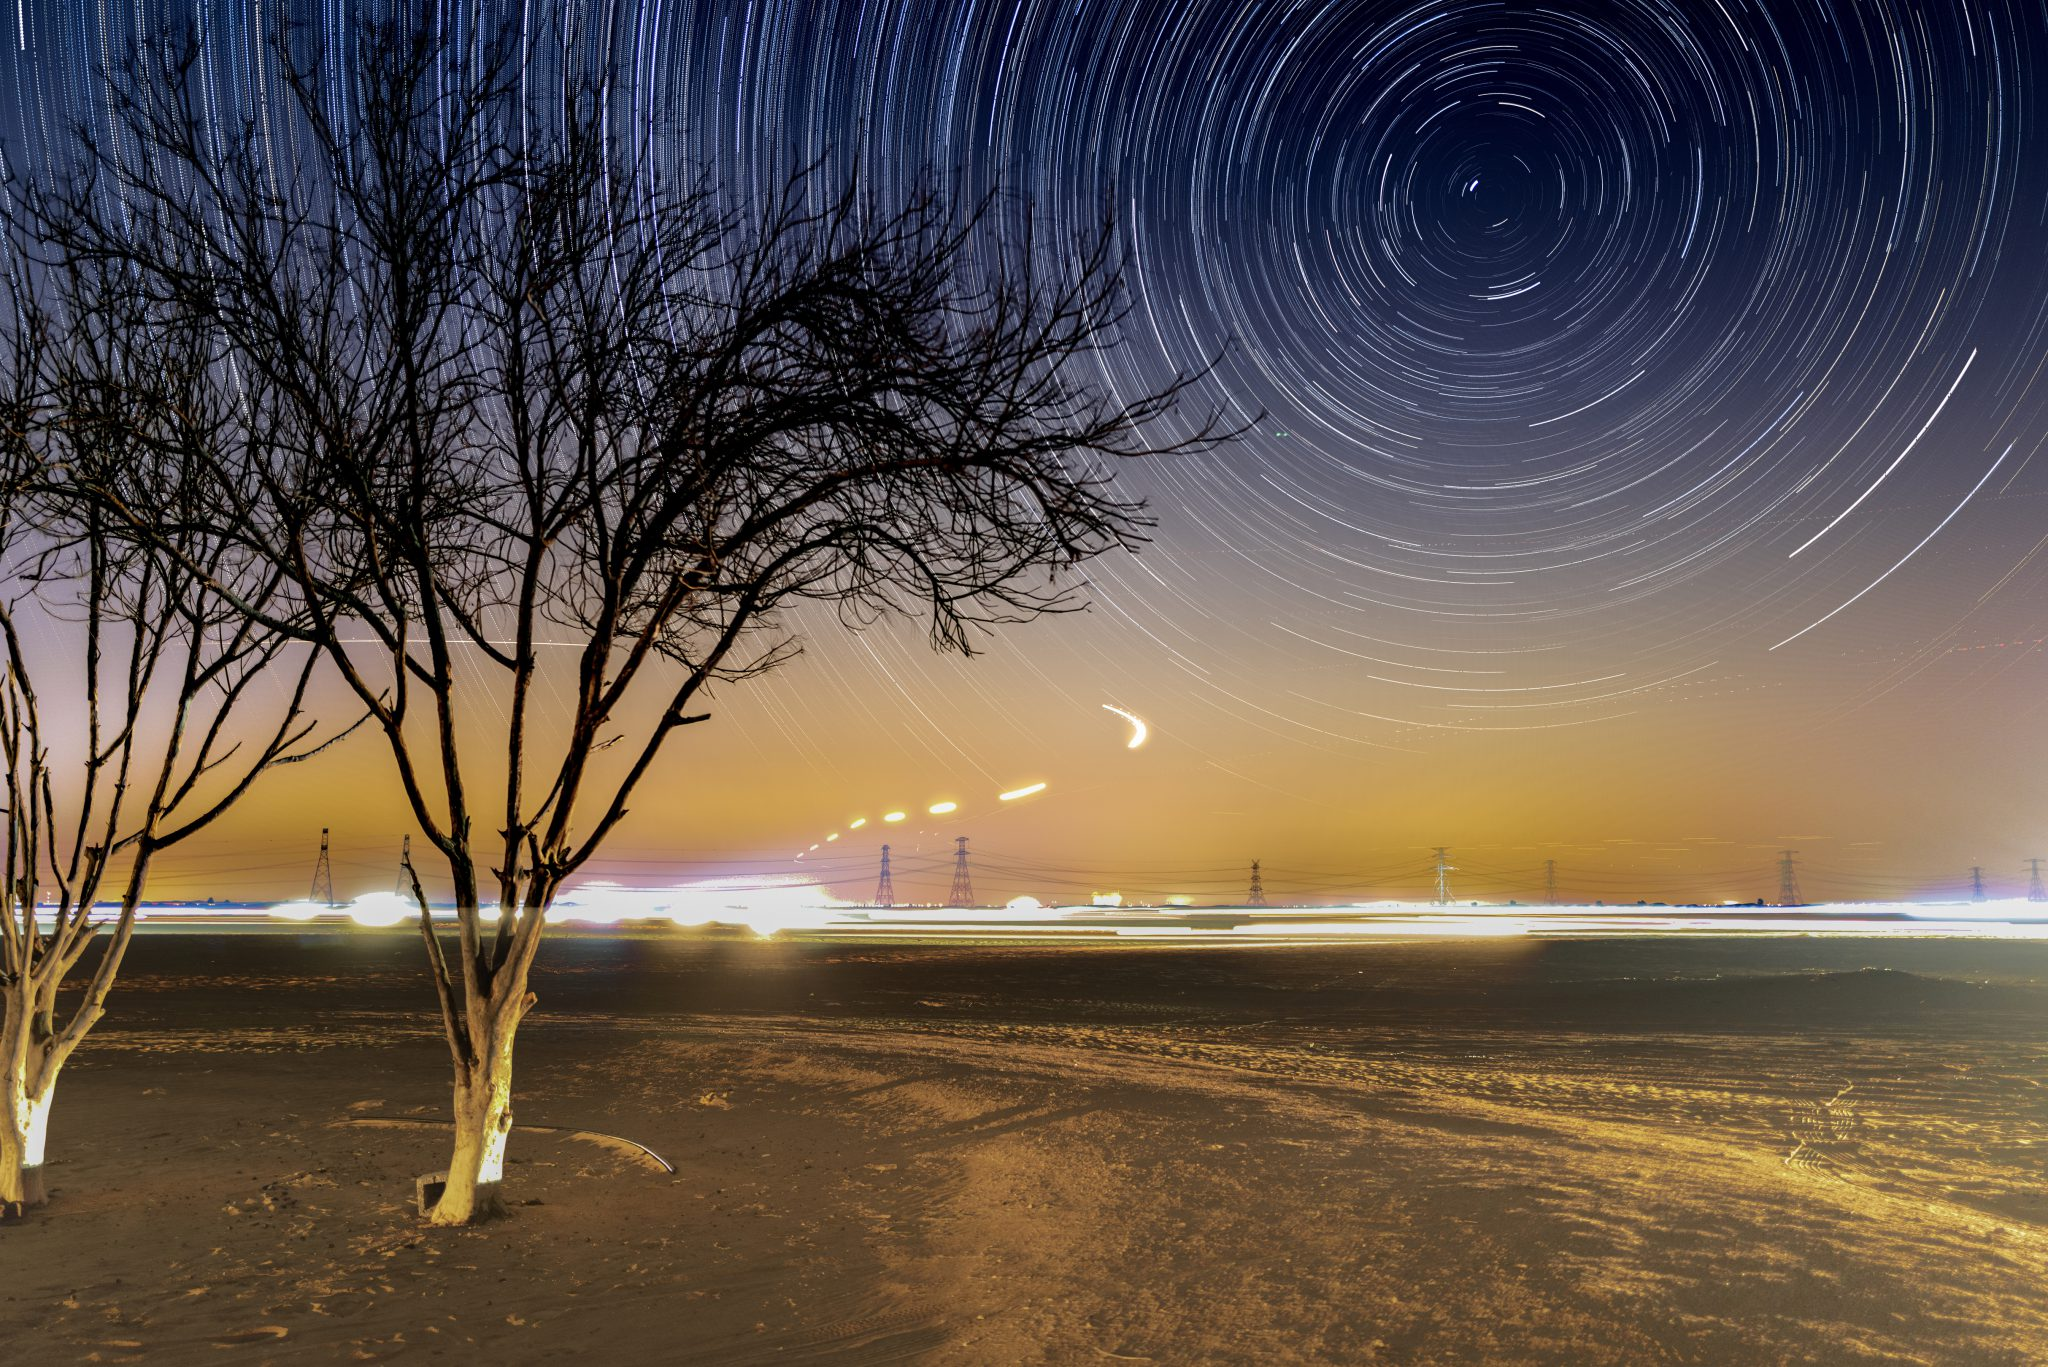 Composite photograph of star trails taken from the Al Qudra Desert on the outskirts of Dubai